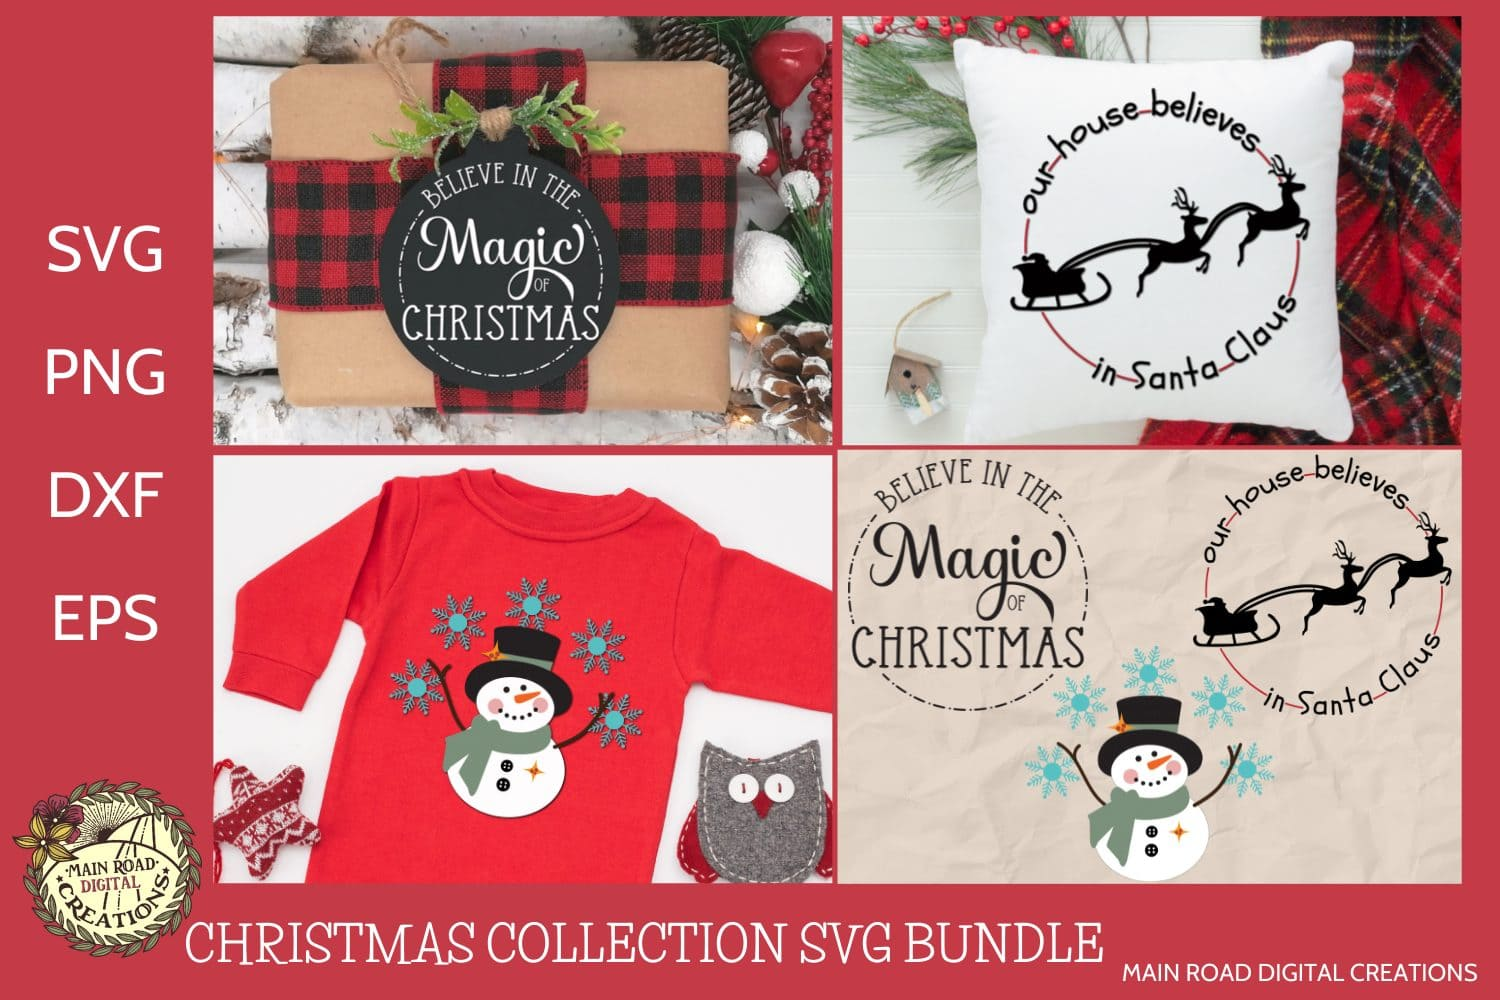 Christmas ornament designs, Christmas SVG, snowman cut file, cricut user files, Design Bundles, believe in the magic of Christmas, Santa and his sleigh silhouette